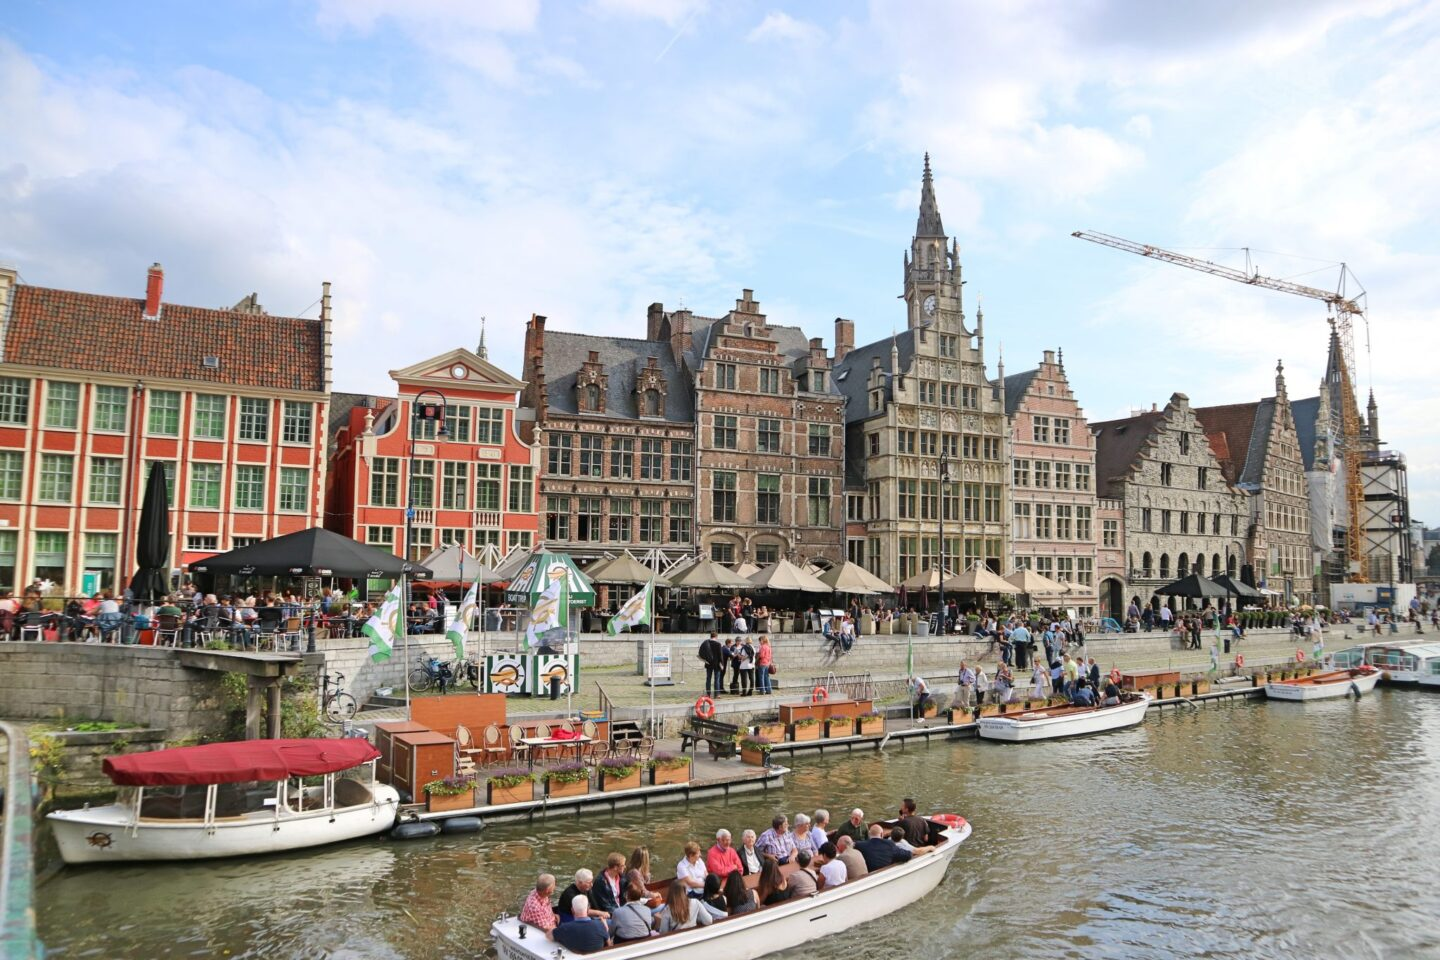 Belgium: Top Things to Do When Visiting the Fairytale City of Ghent